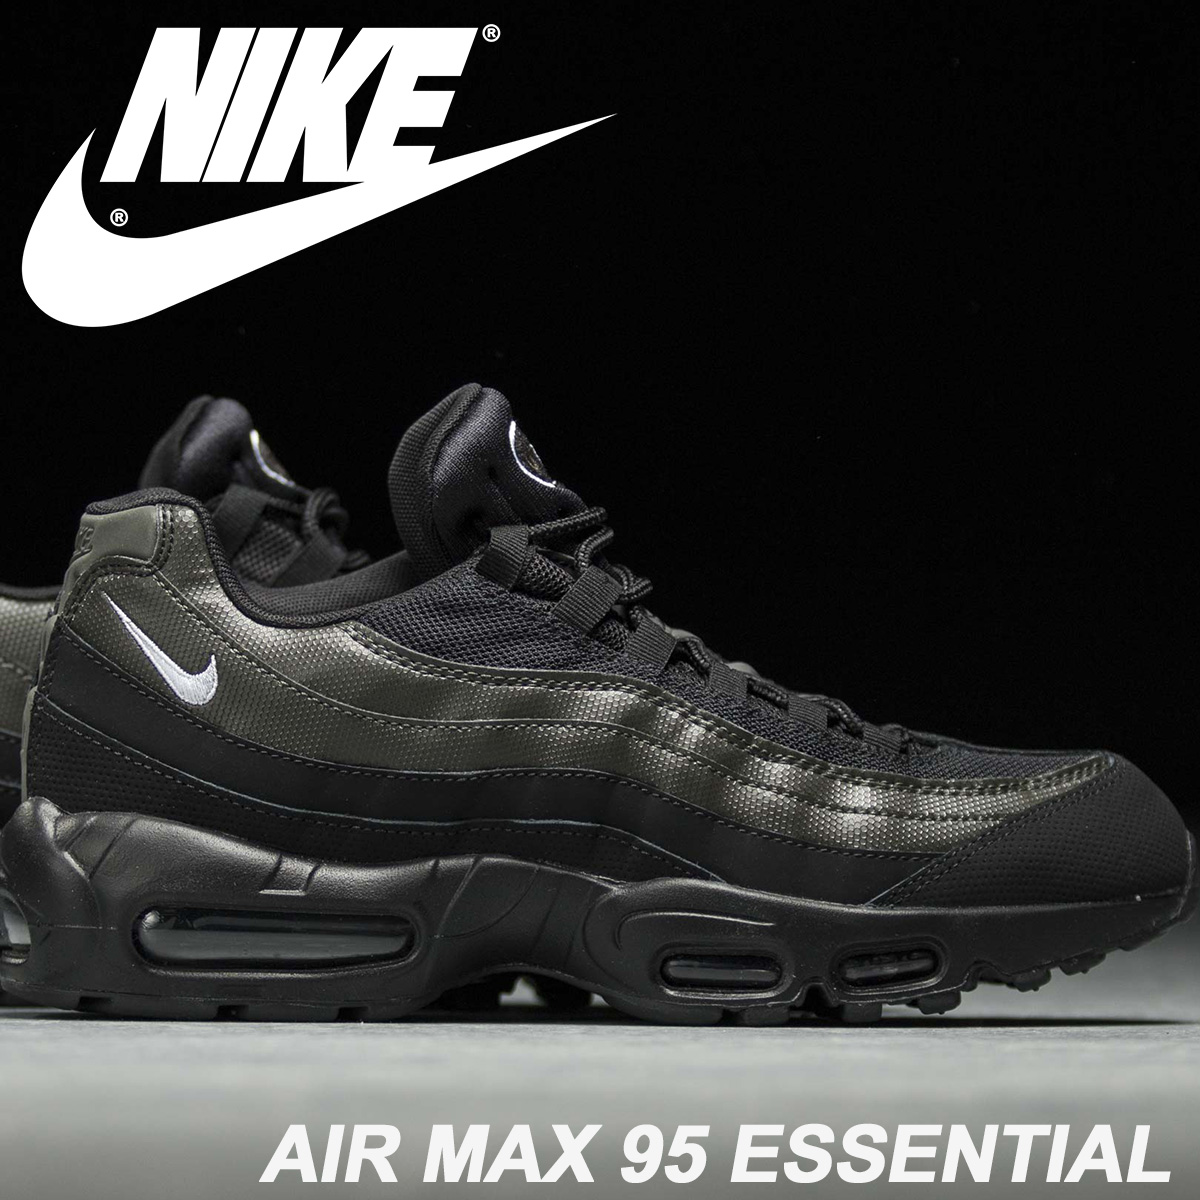 premium selection 8be32 20110 NIKE Kie Ney AMAX 95 essential sneakers men AIR MAX 95 ESSENTIAL 7,497,664-034  black black  4 24 reentry load